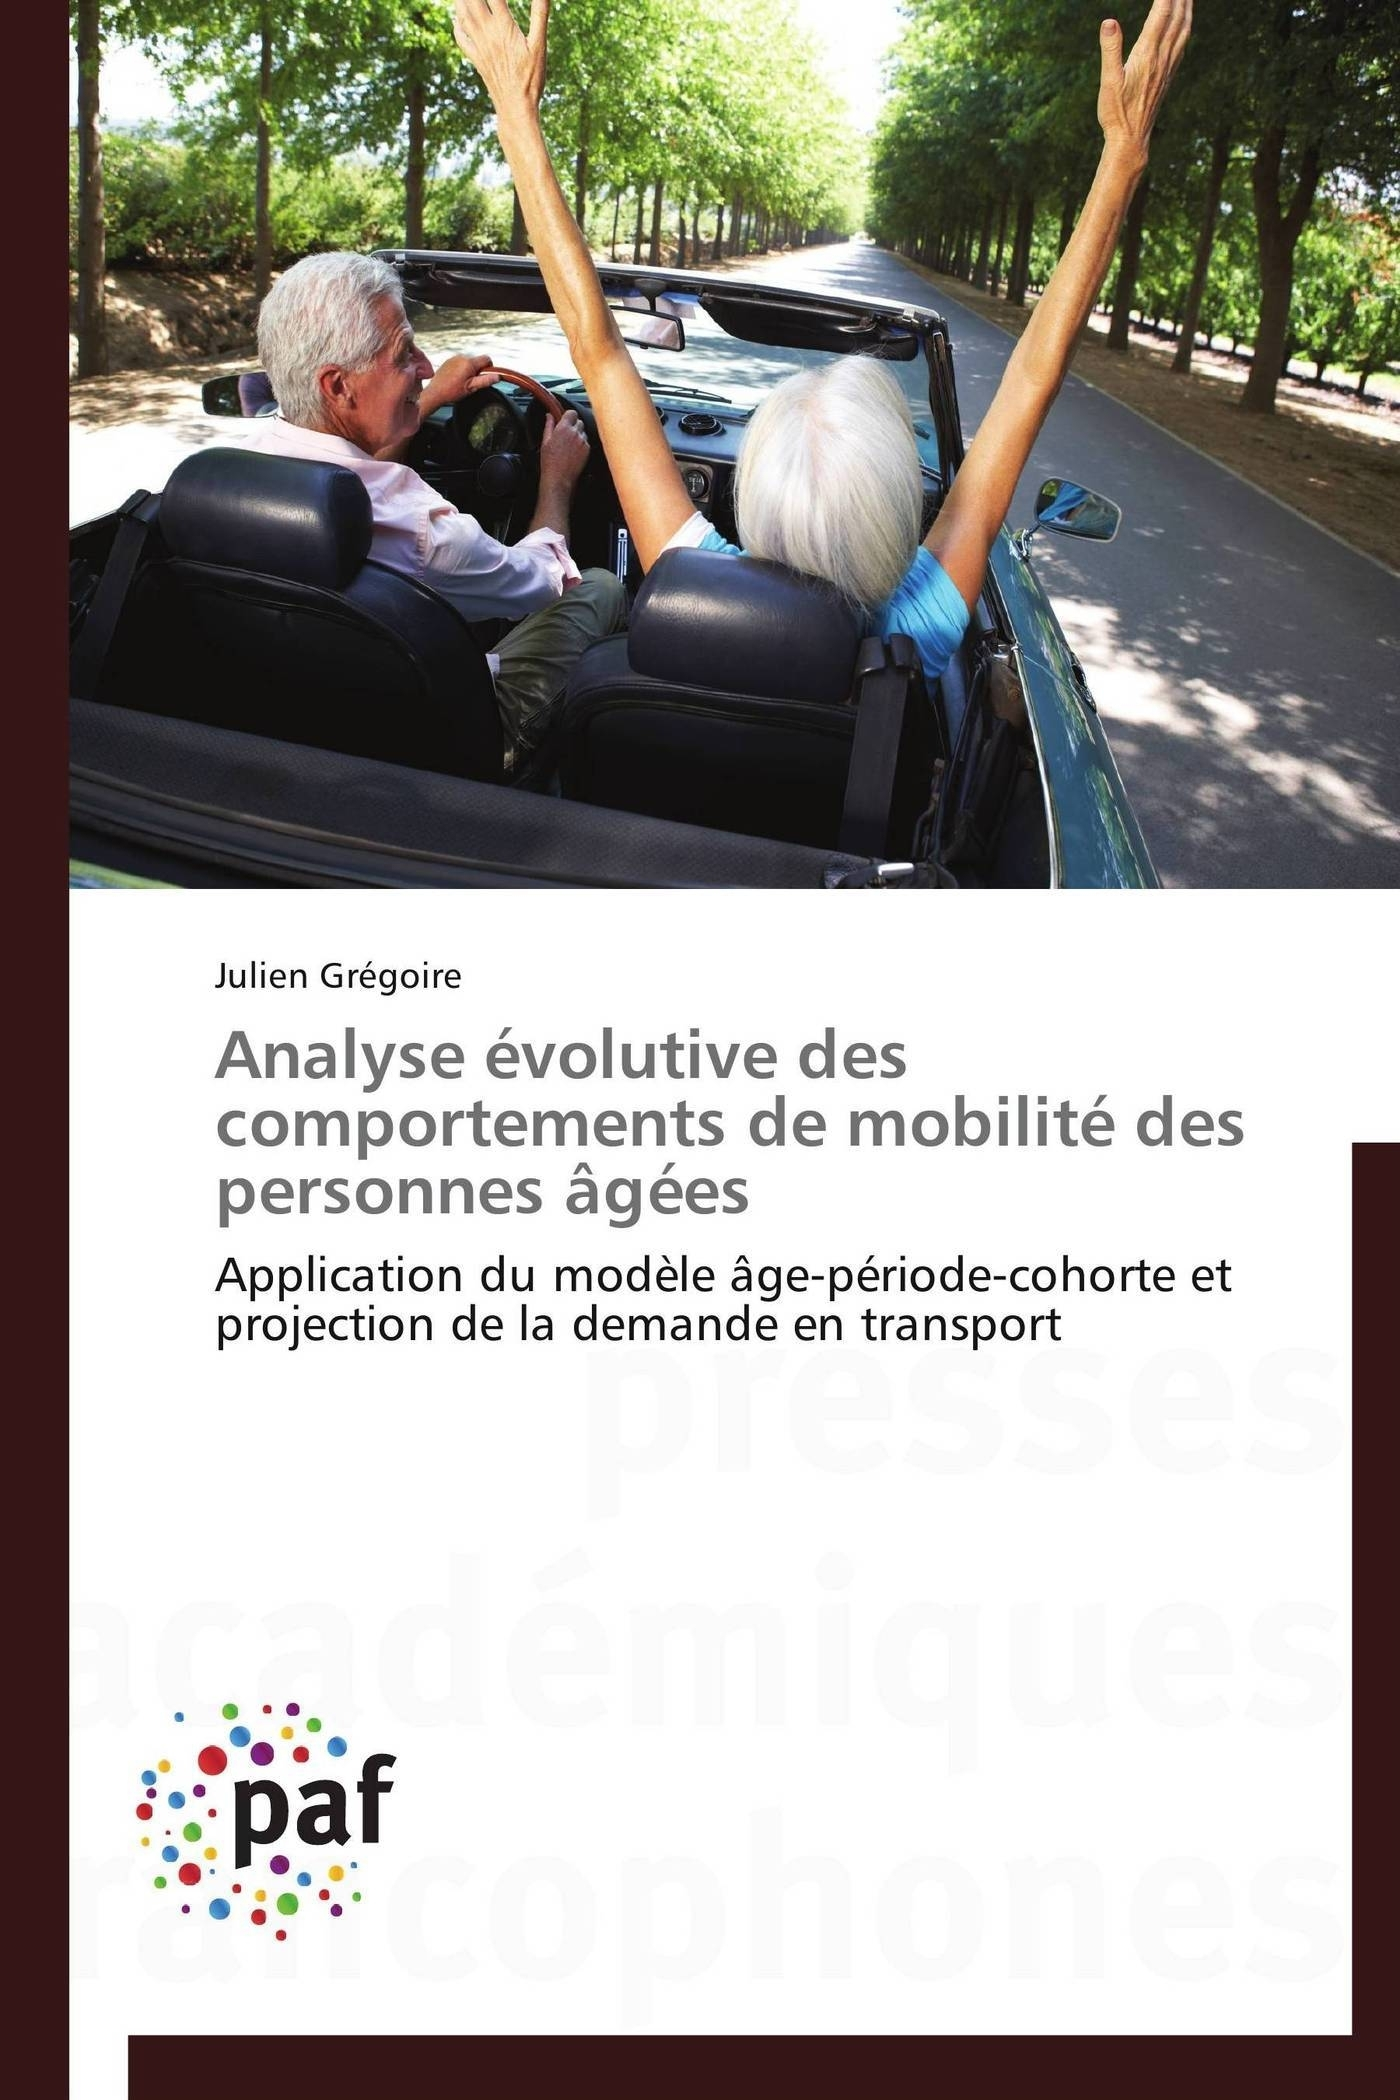 ANALYSE EVOLUTIVE DES COMPORTEMENTS DE MOBILITE DES PERSONNES AGEES